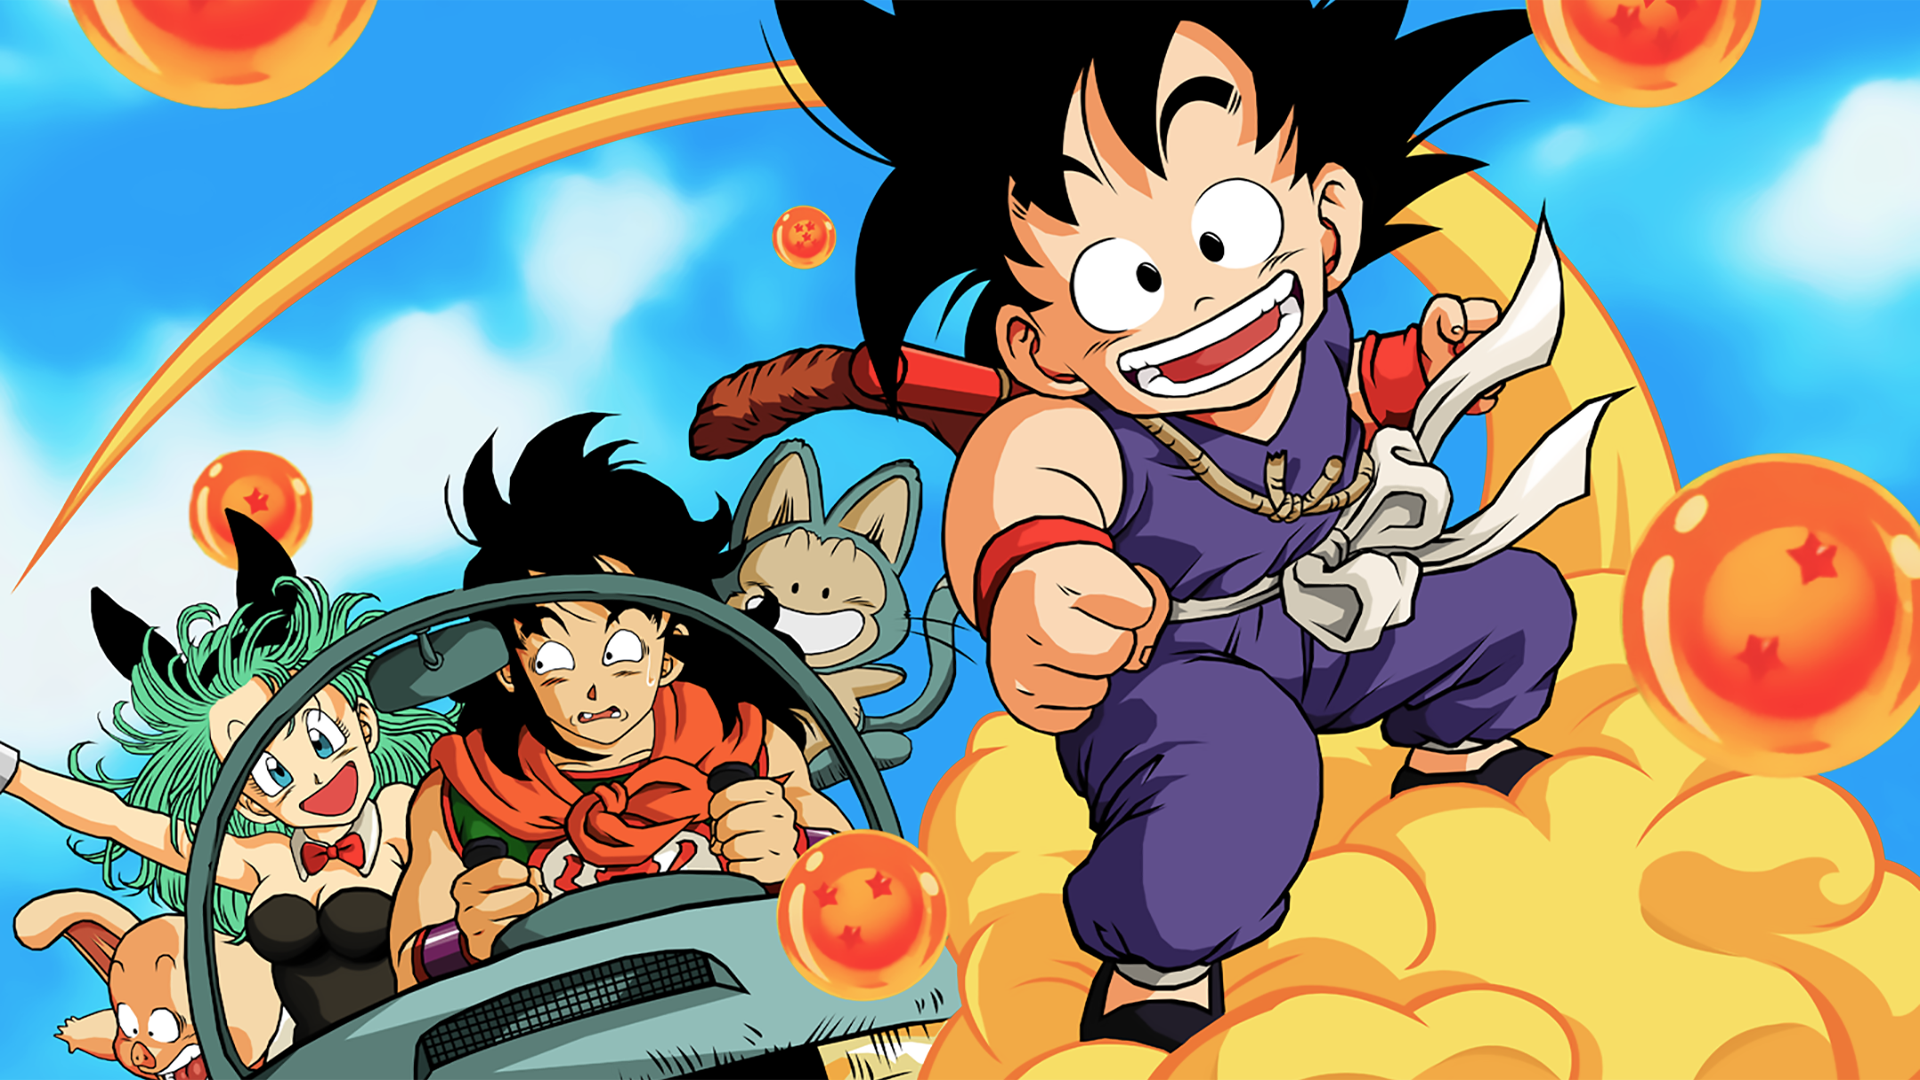 Fondos De Pantalla De Dragon Ball: Dragon Ball Adventure Fondo De Pantalla HD